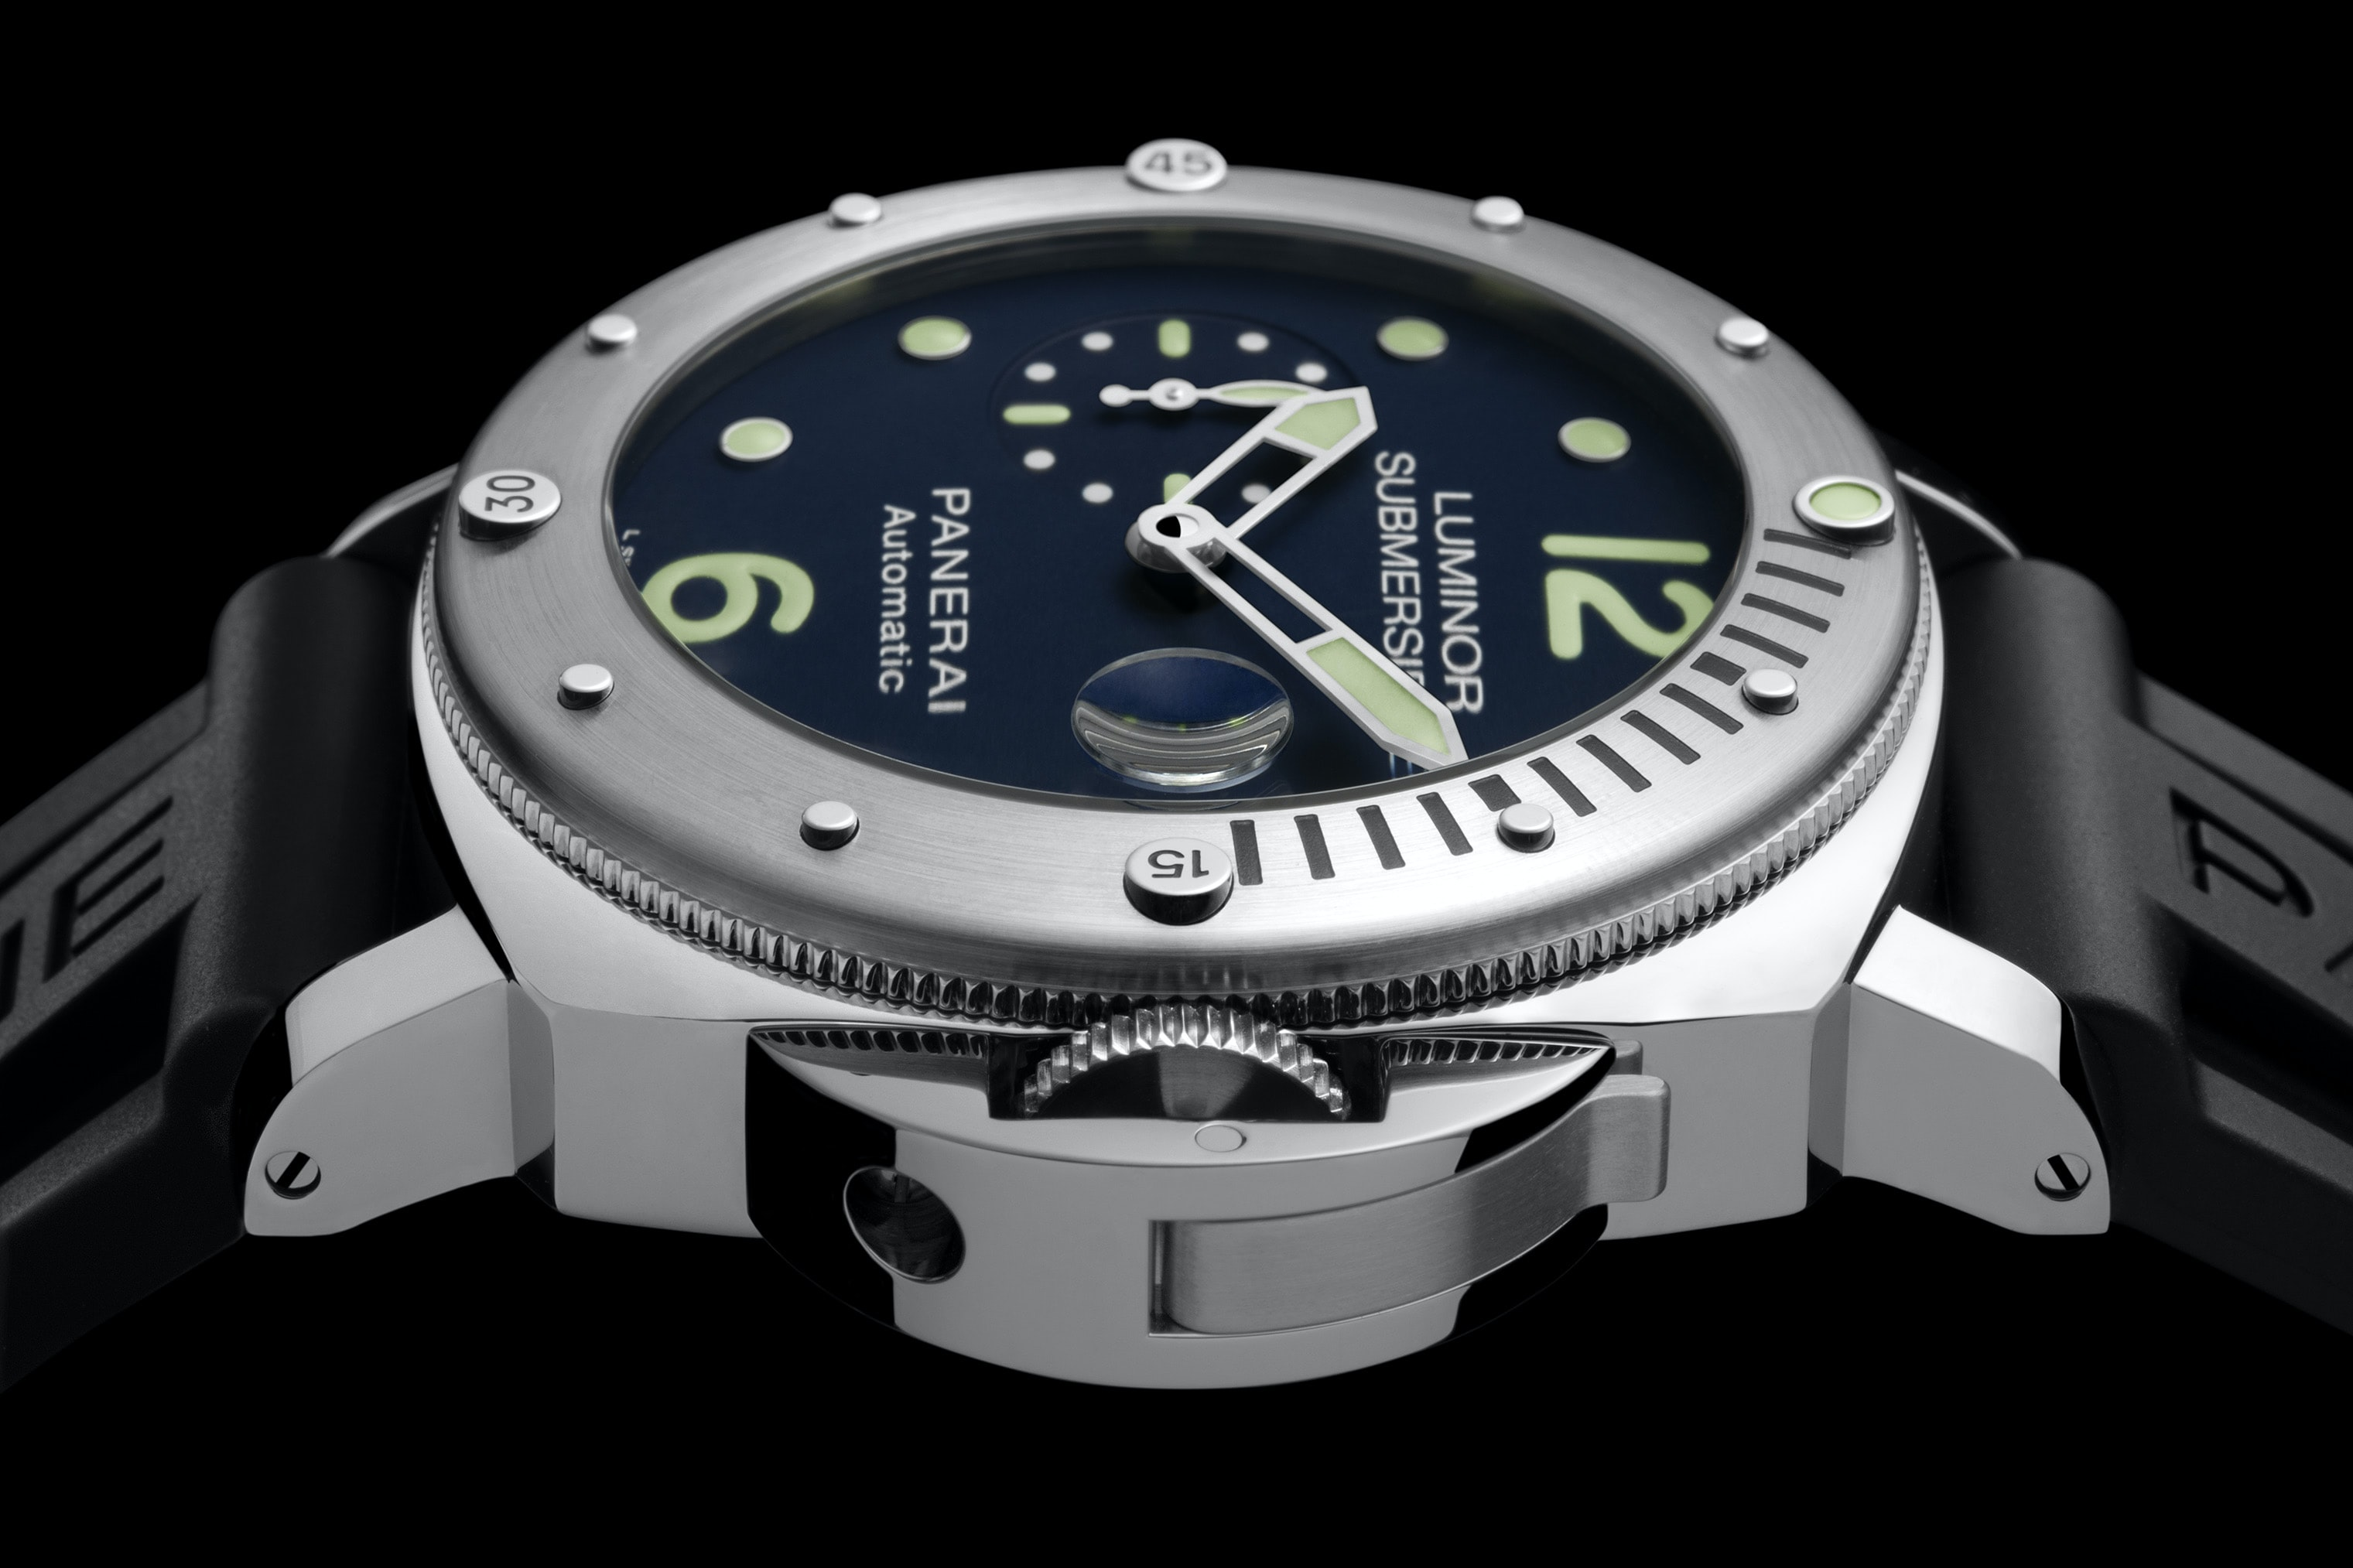 Introducing: The Panerai Limited Edition Luminor Submersible Acciaio PAM00731, An E-Boutique Limited Edition Introducing: The Panerai Limited Edition Luminor Submersible Acciaio PAM00731, An E-Boutique Limited Edition Pam731 Cat Dett02 B